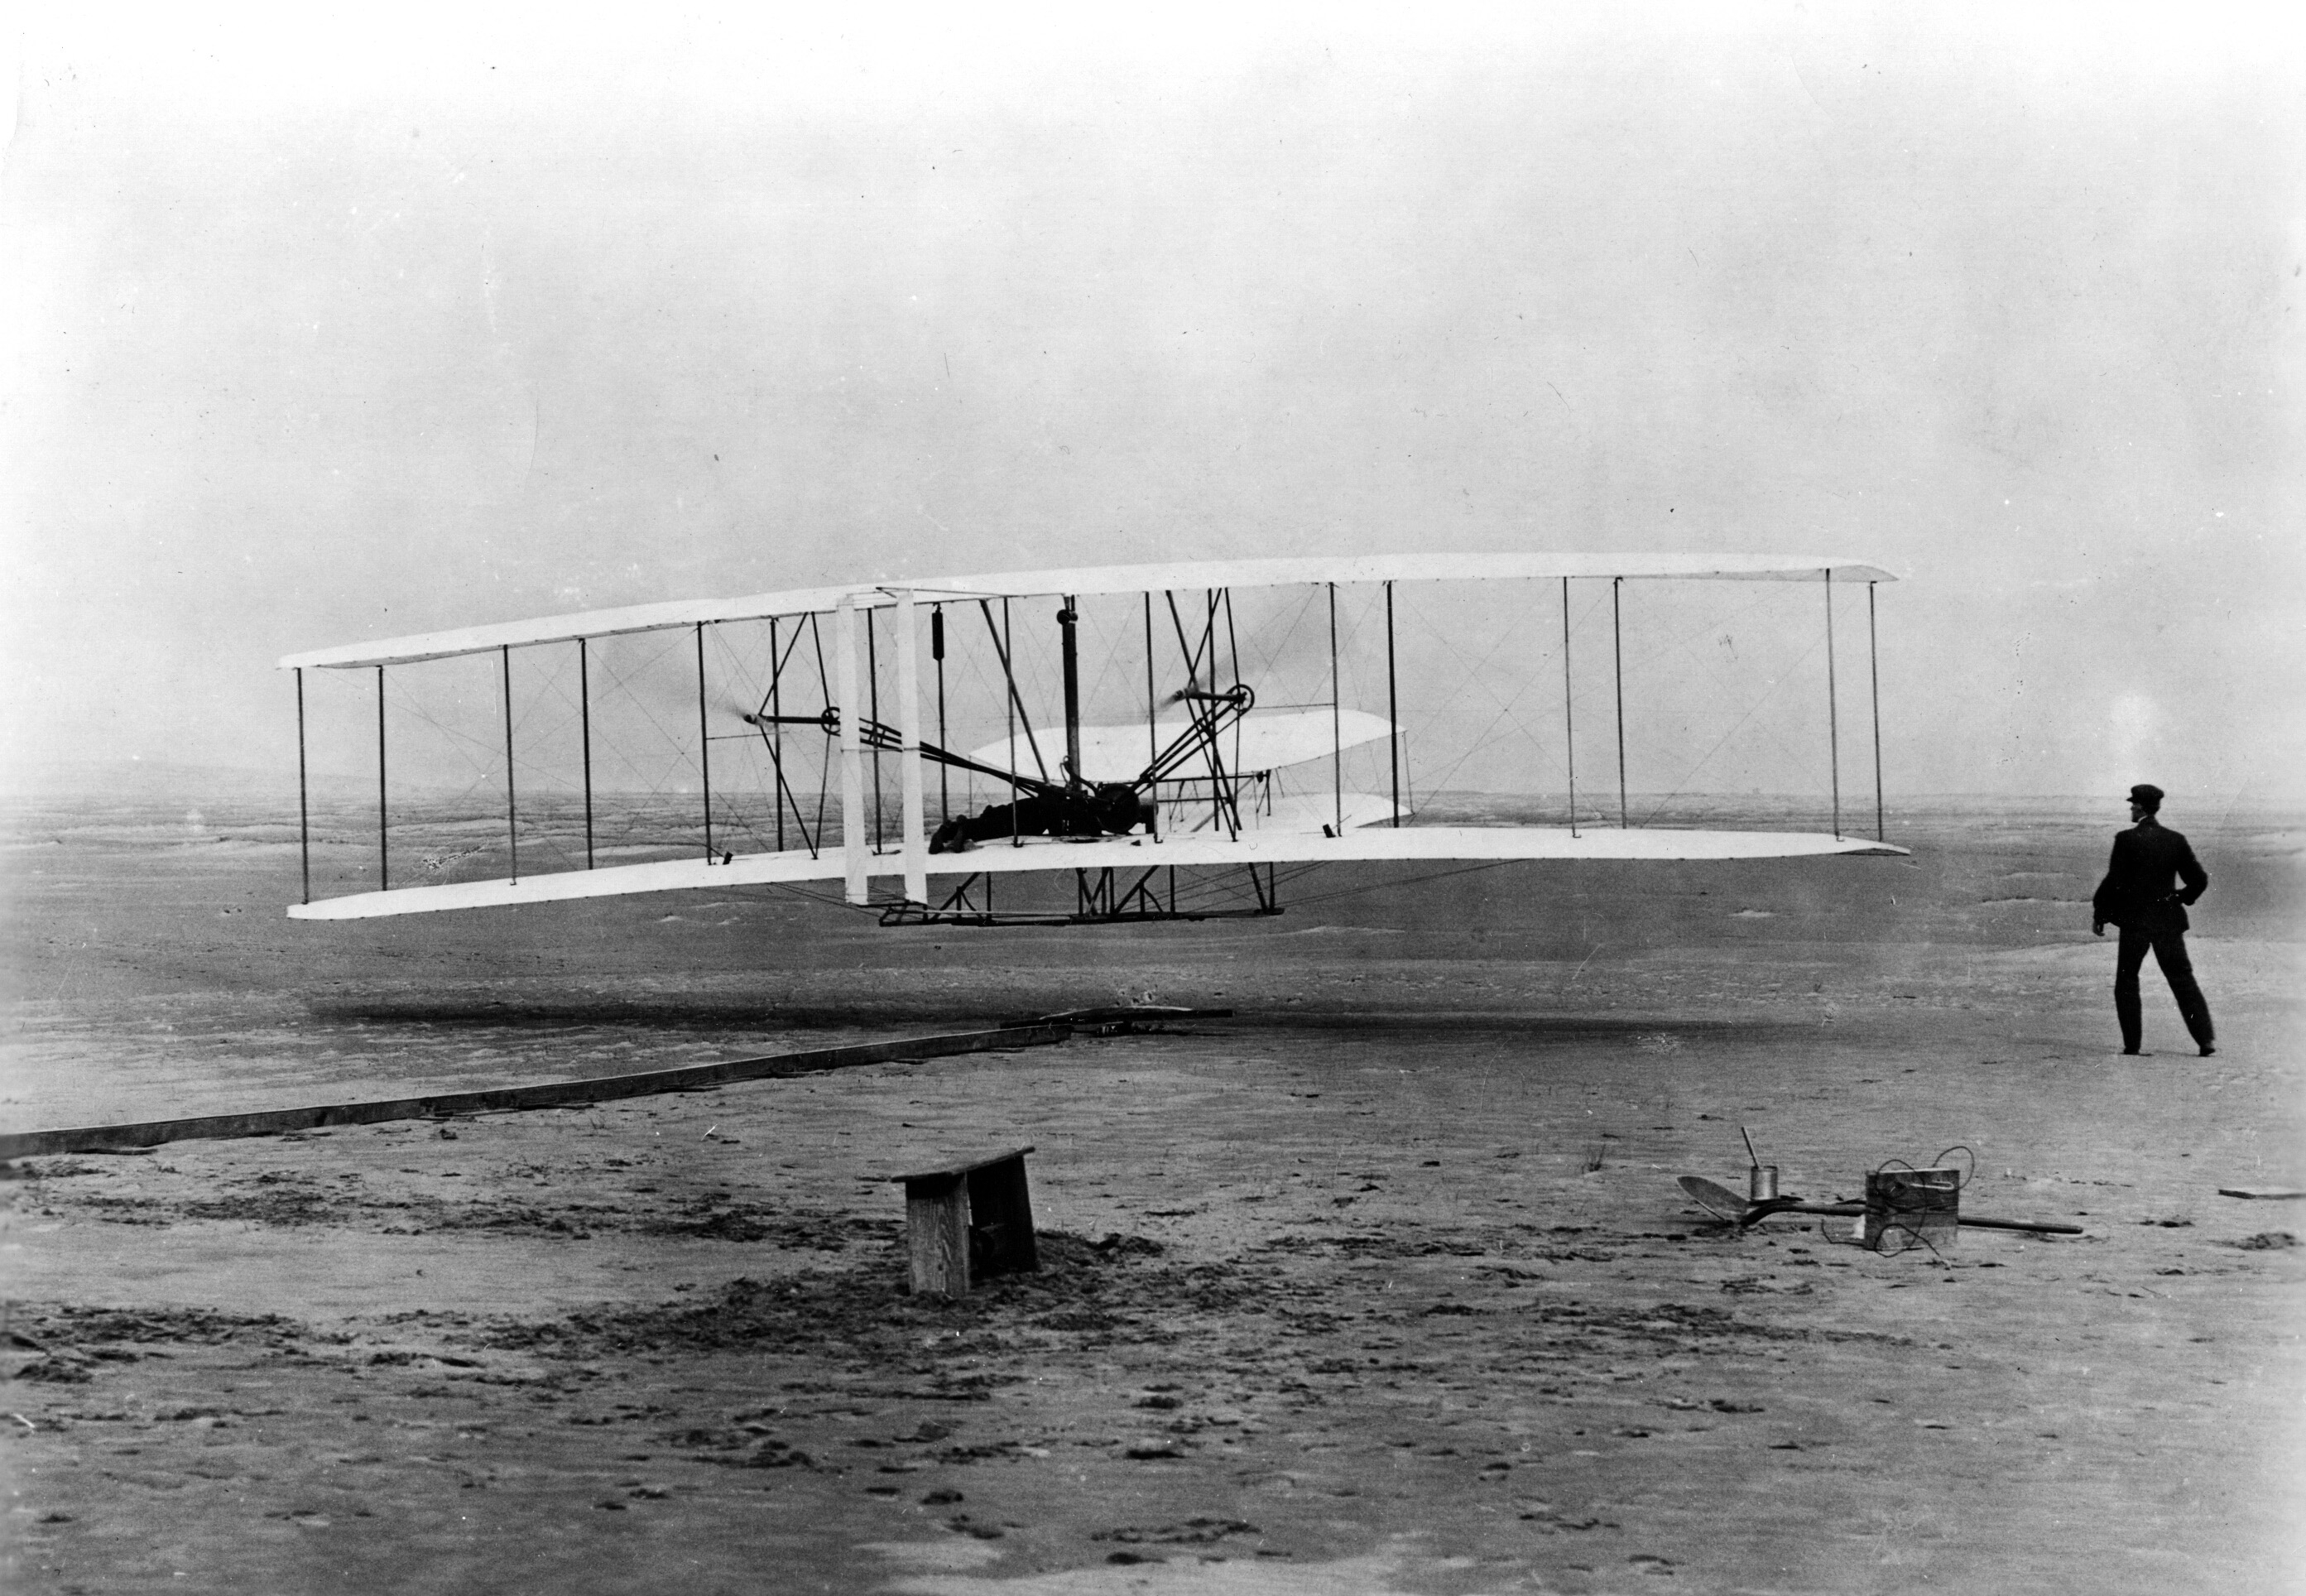 """""""Original Wright Brothers 1903 Aeroplane ('Kitty Hawk') in first flight, December 17, 1903. (National Archives Identifier 7580929)"""